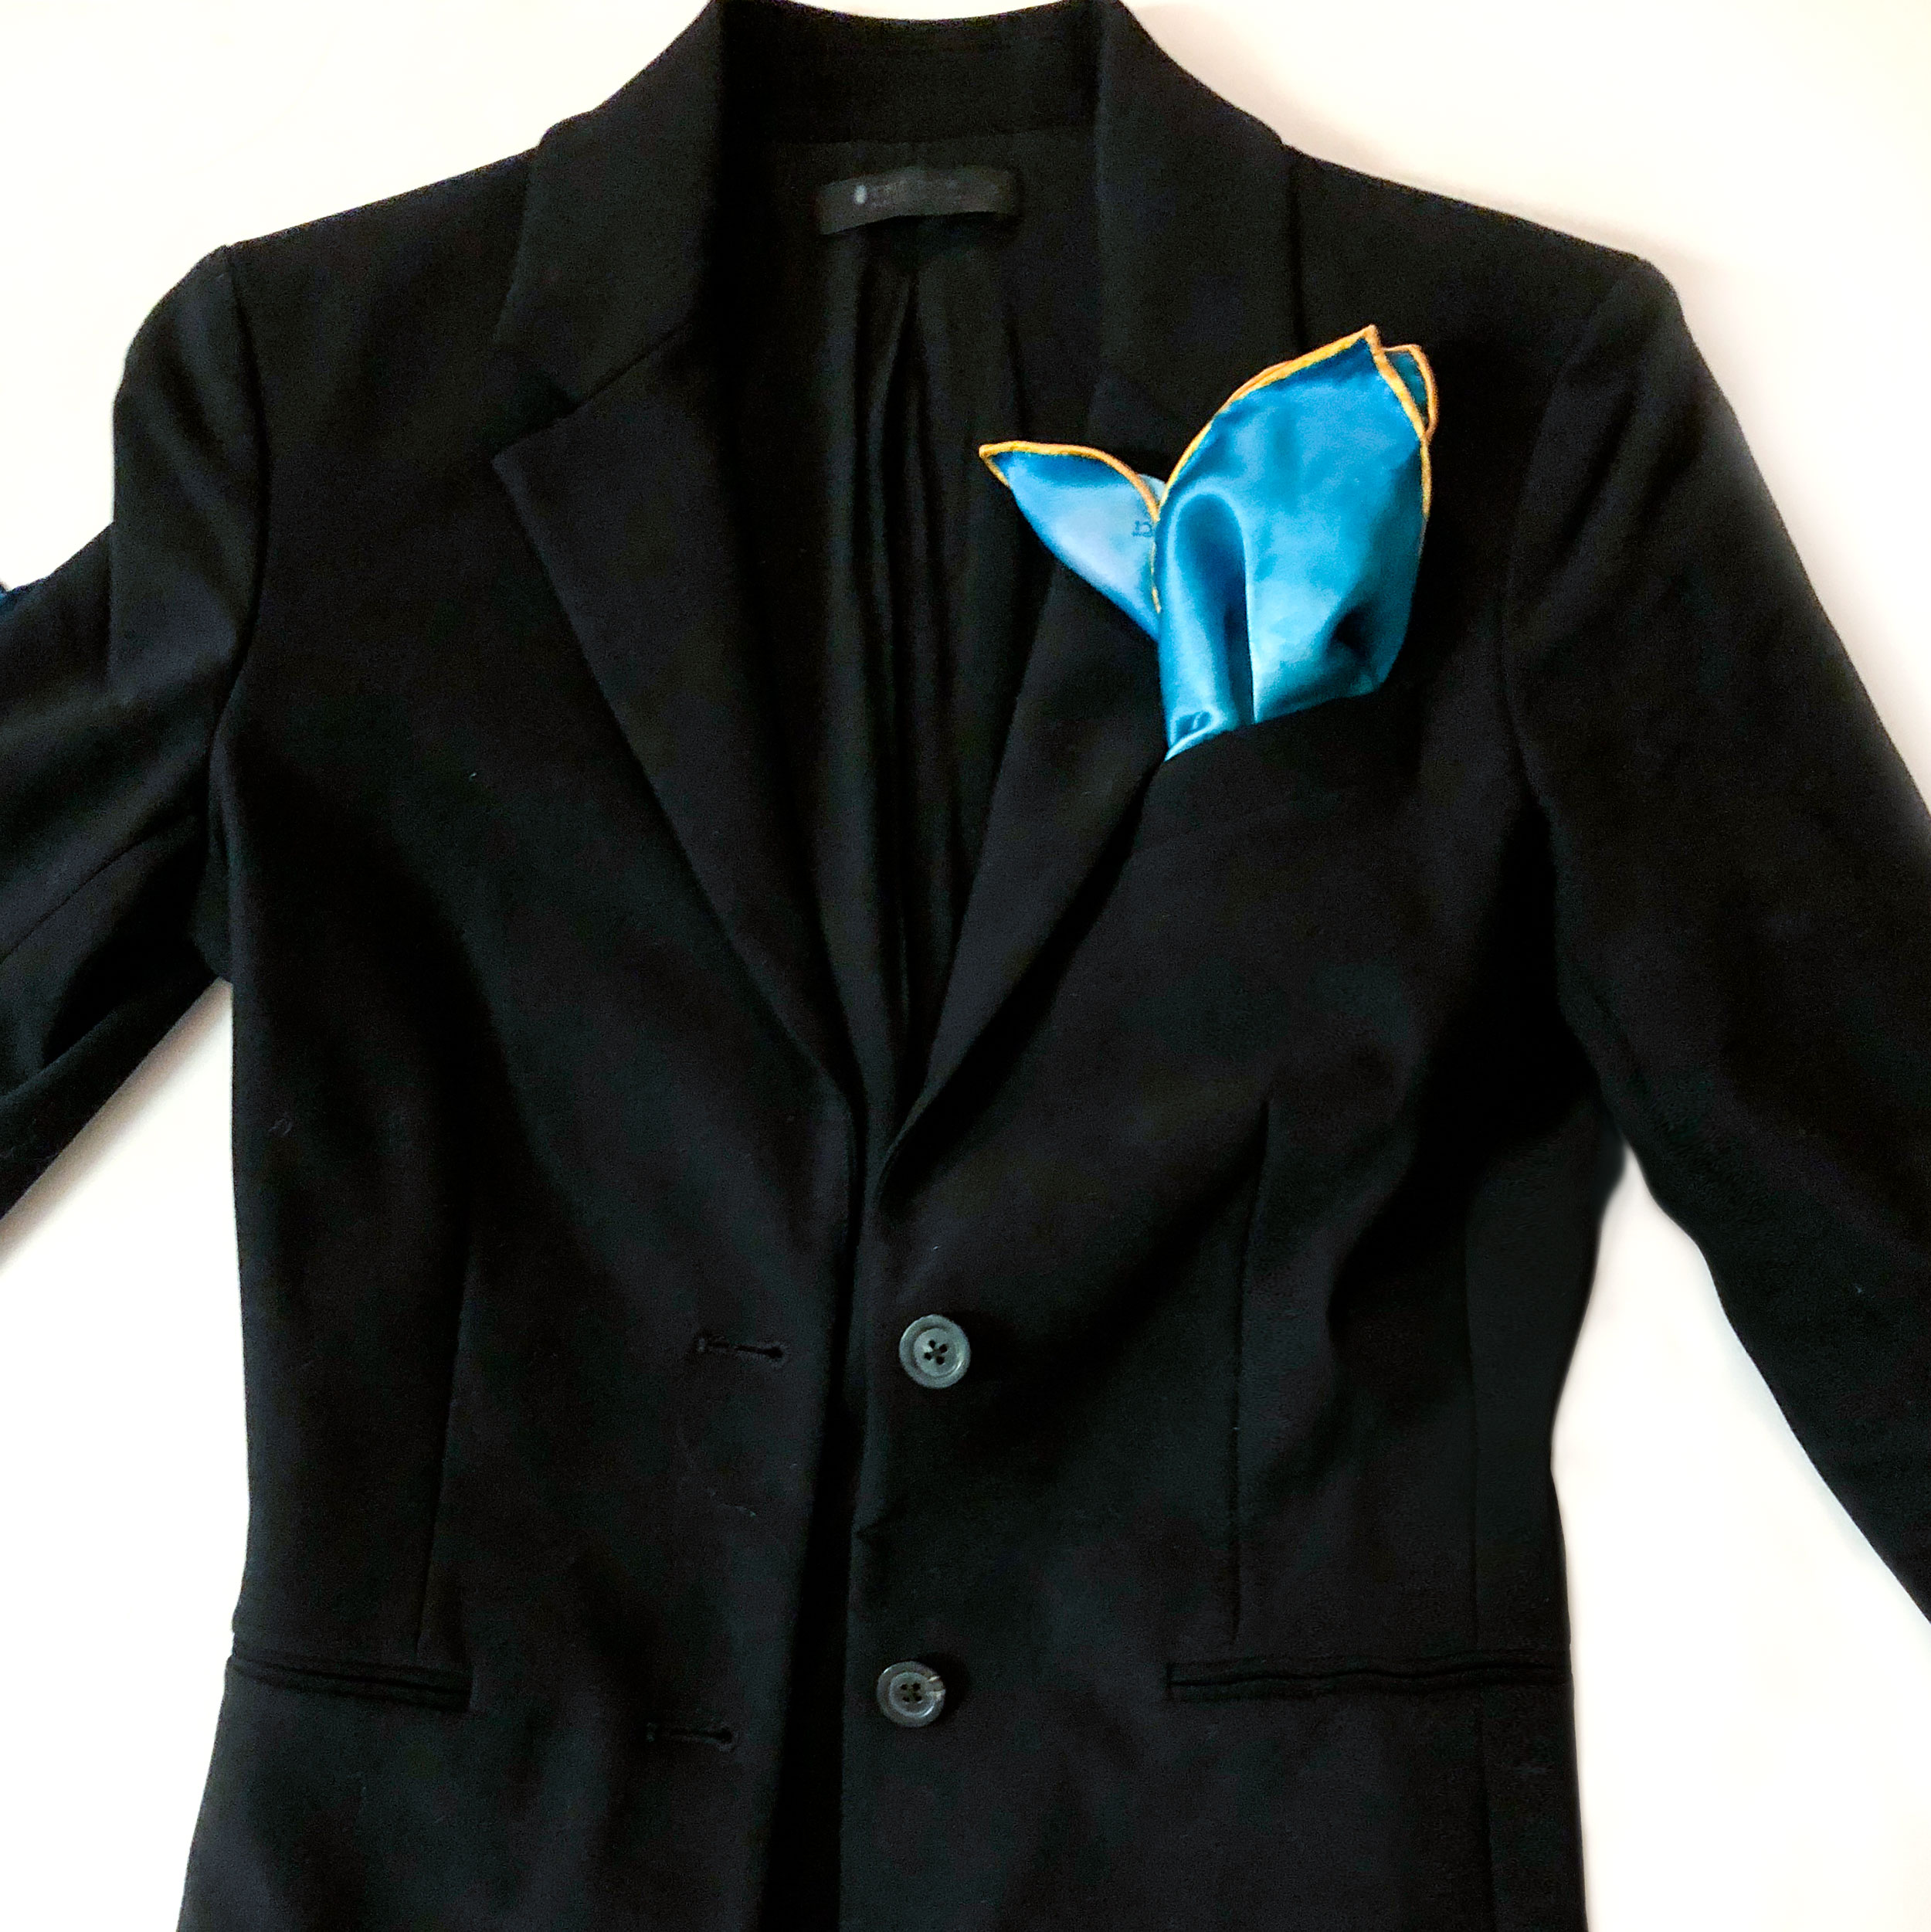 The Little Black Blazer - Pair with color pocket square